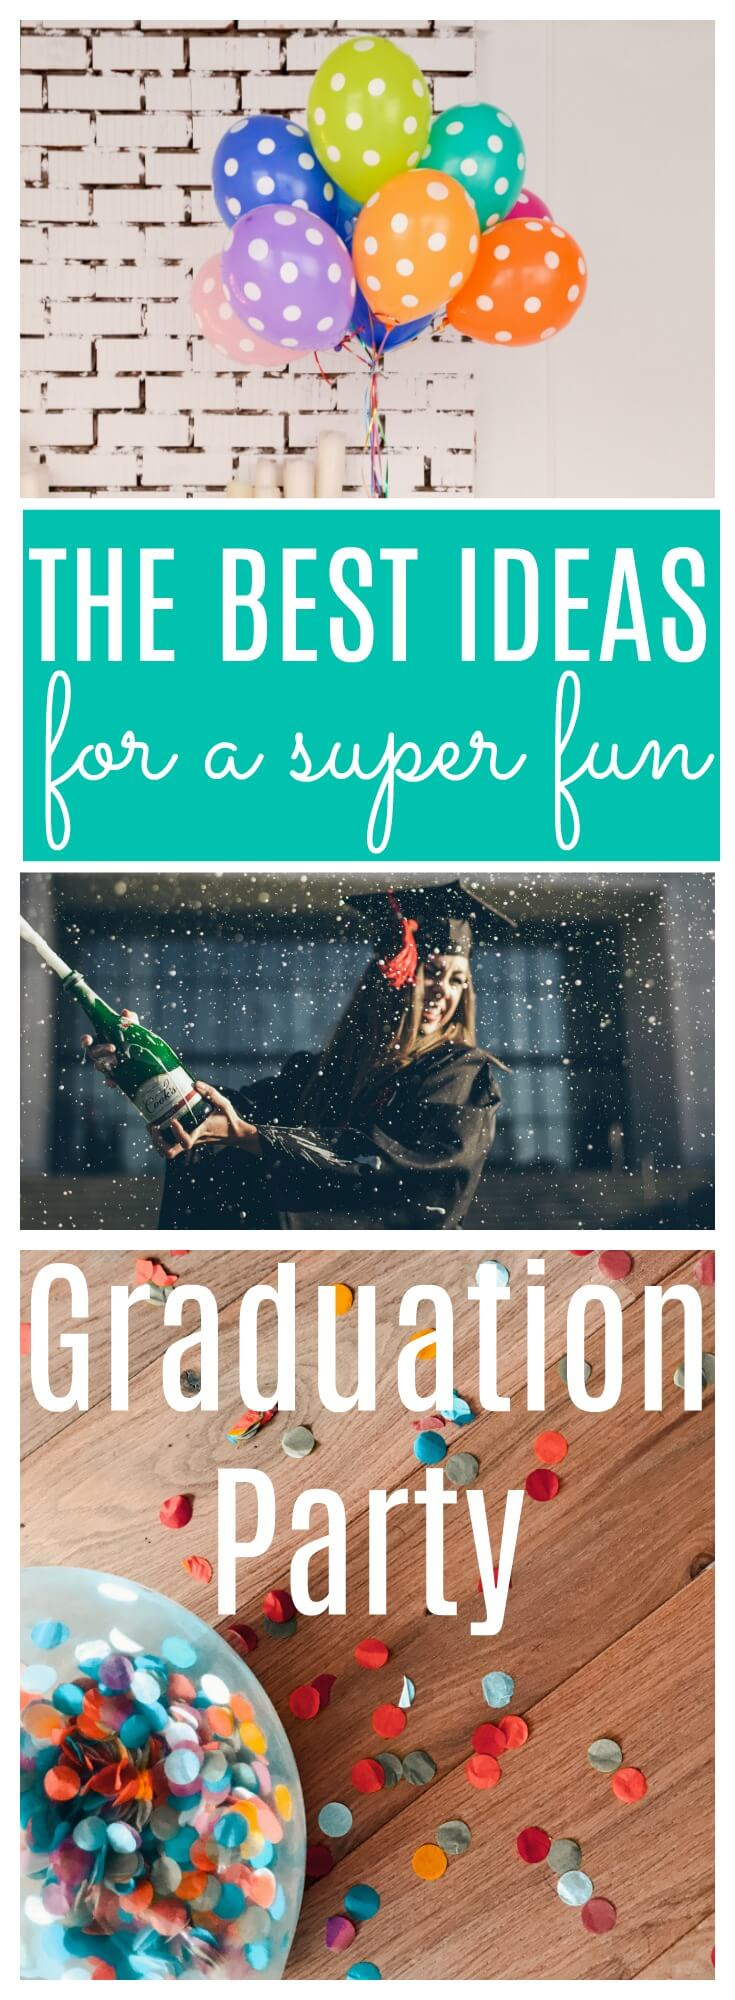 We've got all the best ideas for throwing a super fun graduation party and found some super cute decorations at @shindigz #shindigz #Ad If you're looking for graduation party ideas that include party, decor, food and much more, we've got all the best ideas for throwing a super fun graduation party. #graduation #gradideas #graduationparty #partyideas #gradparty #partydecor #partyfood #collegelife